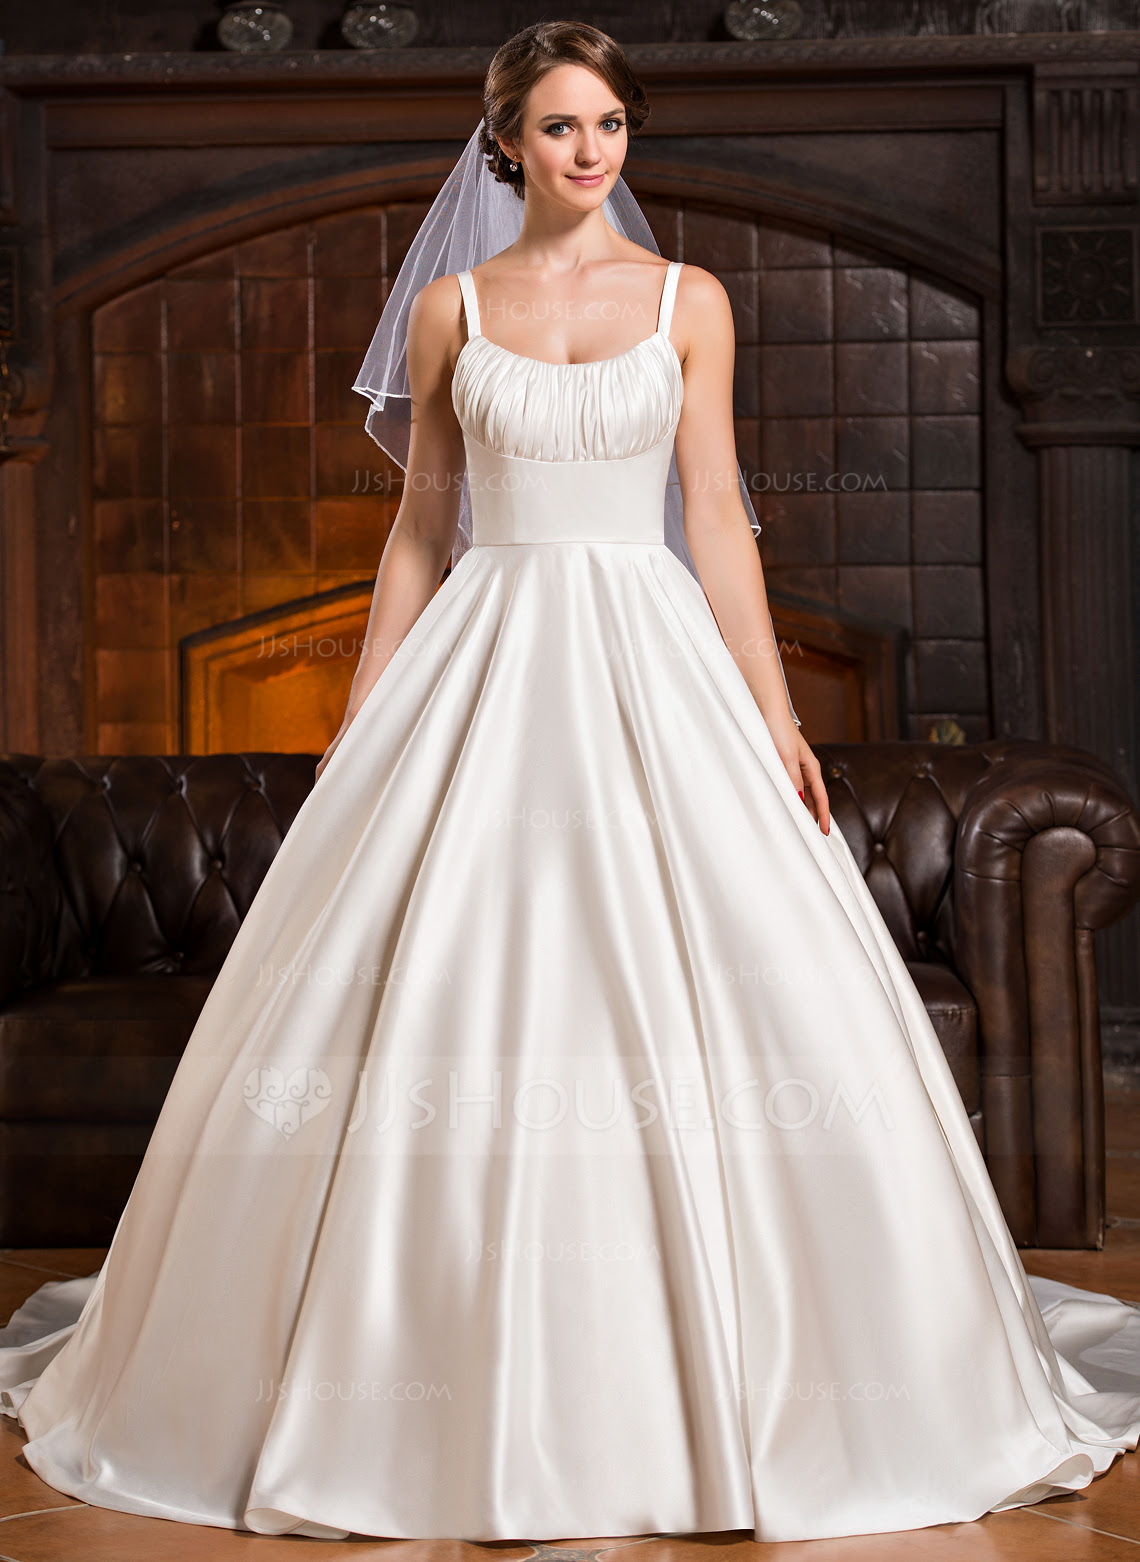 37+ Wedding Dress With Cathedral Train Gif